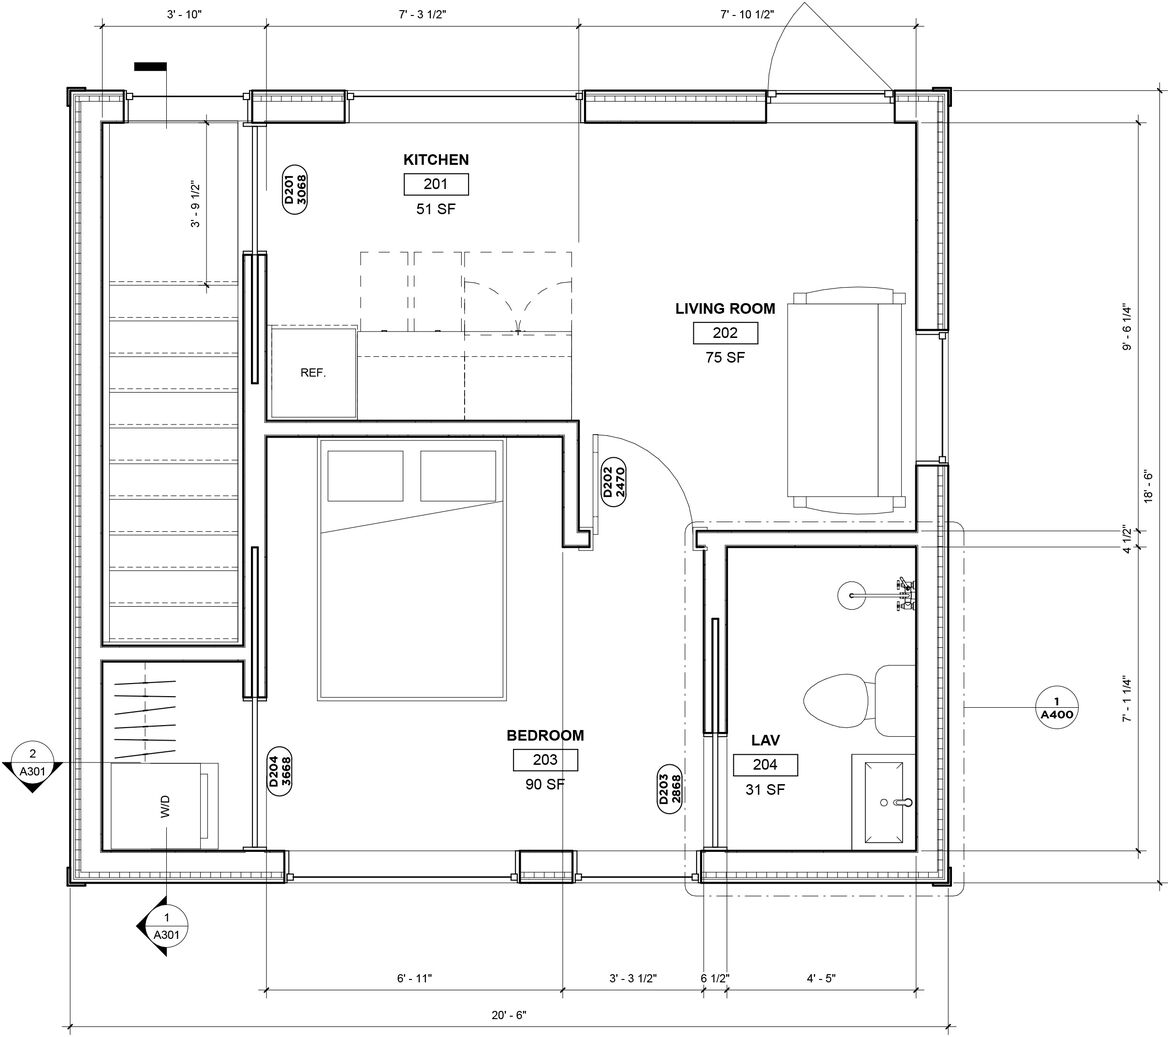 20190911 Somerville Studio 2ND FLOOR PLAN